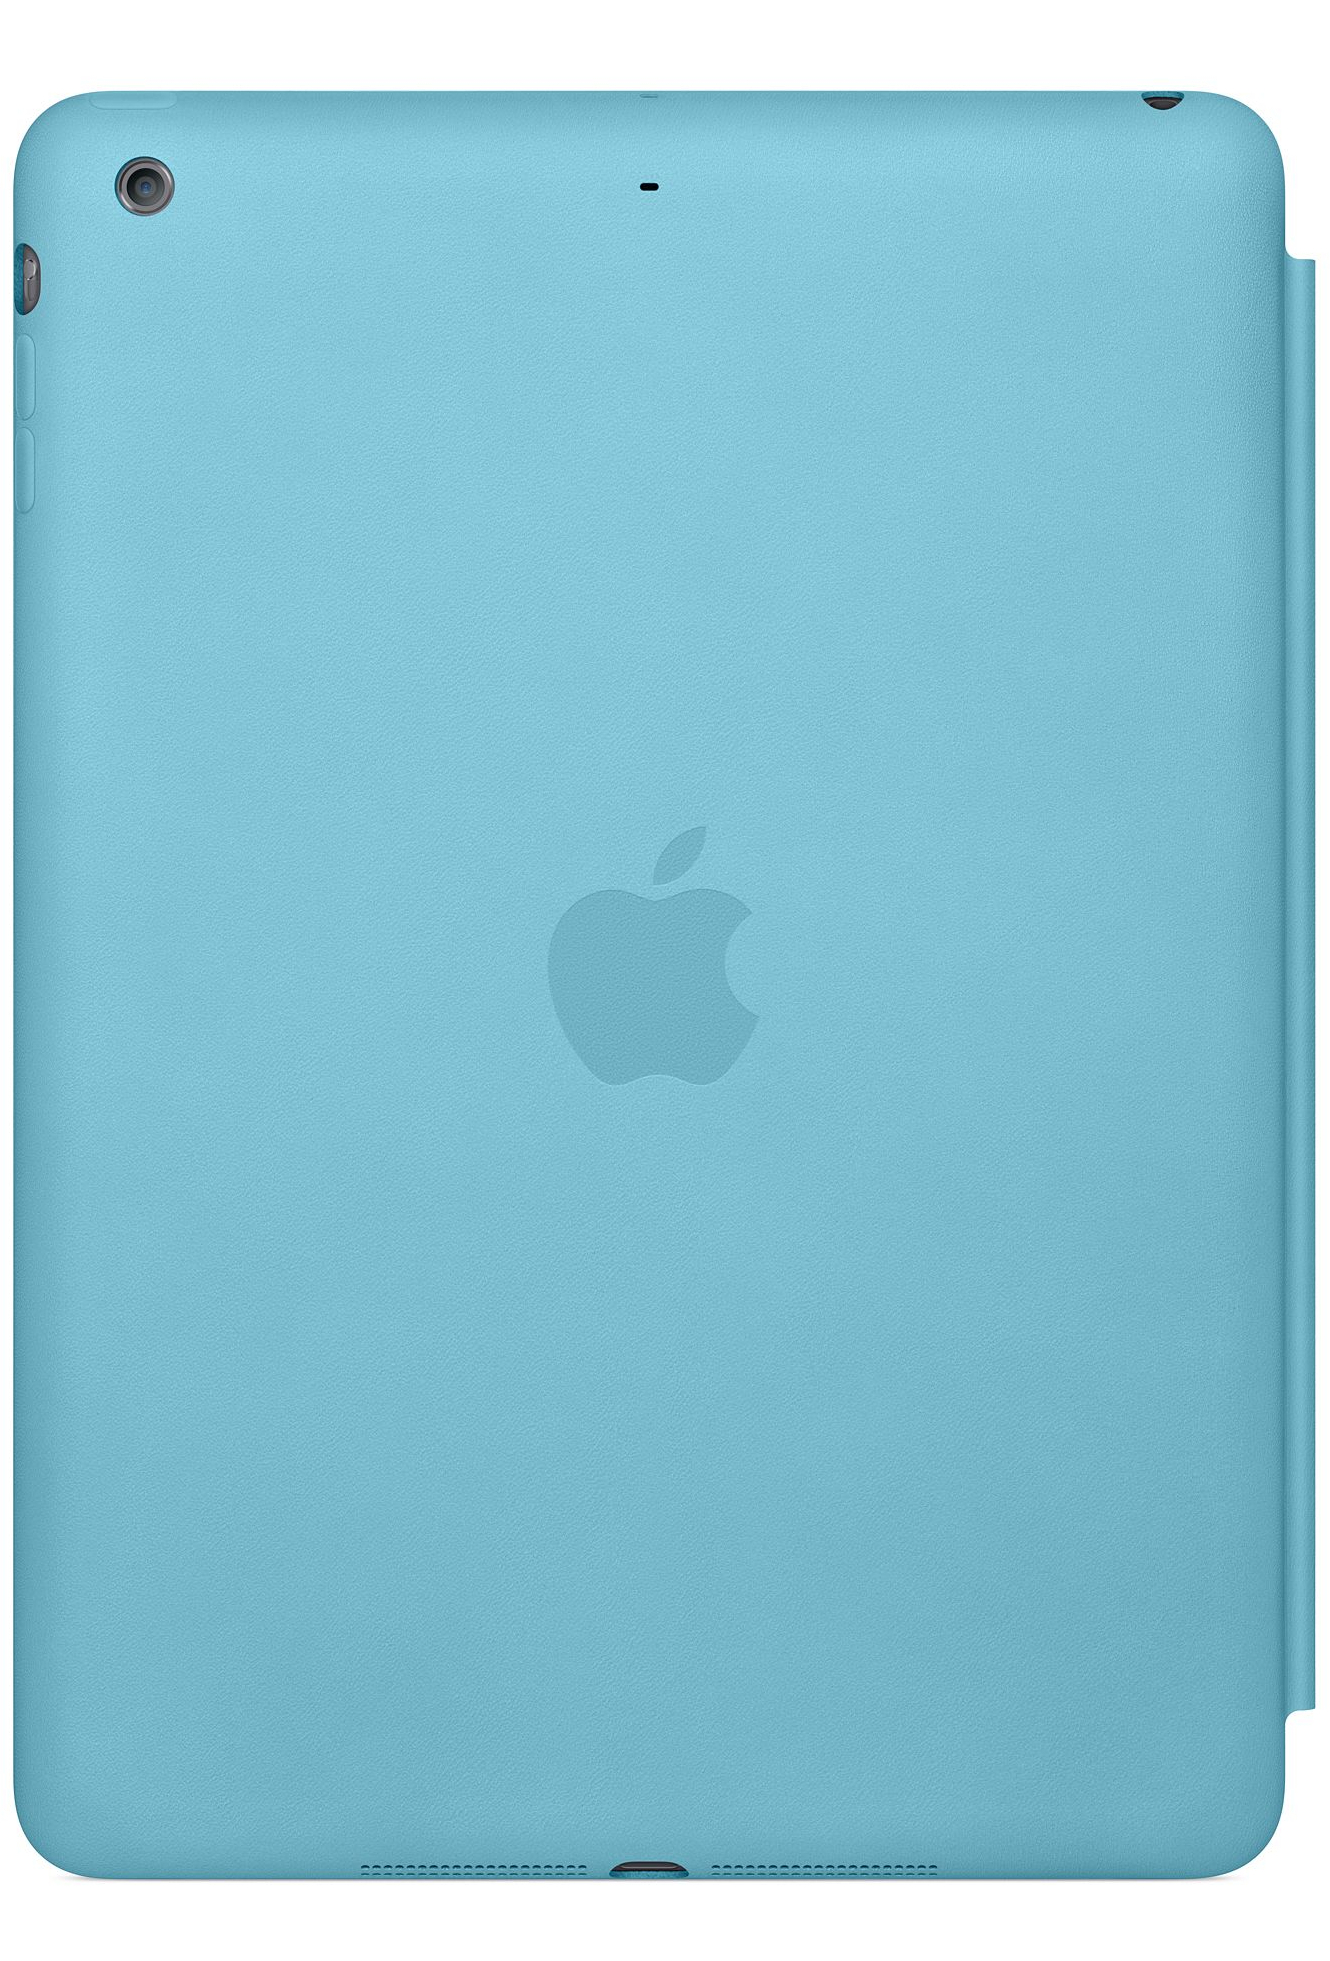 Smart Case azul para iPad Air